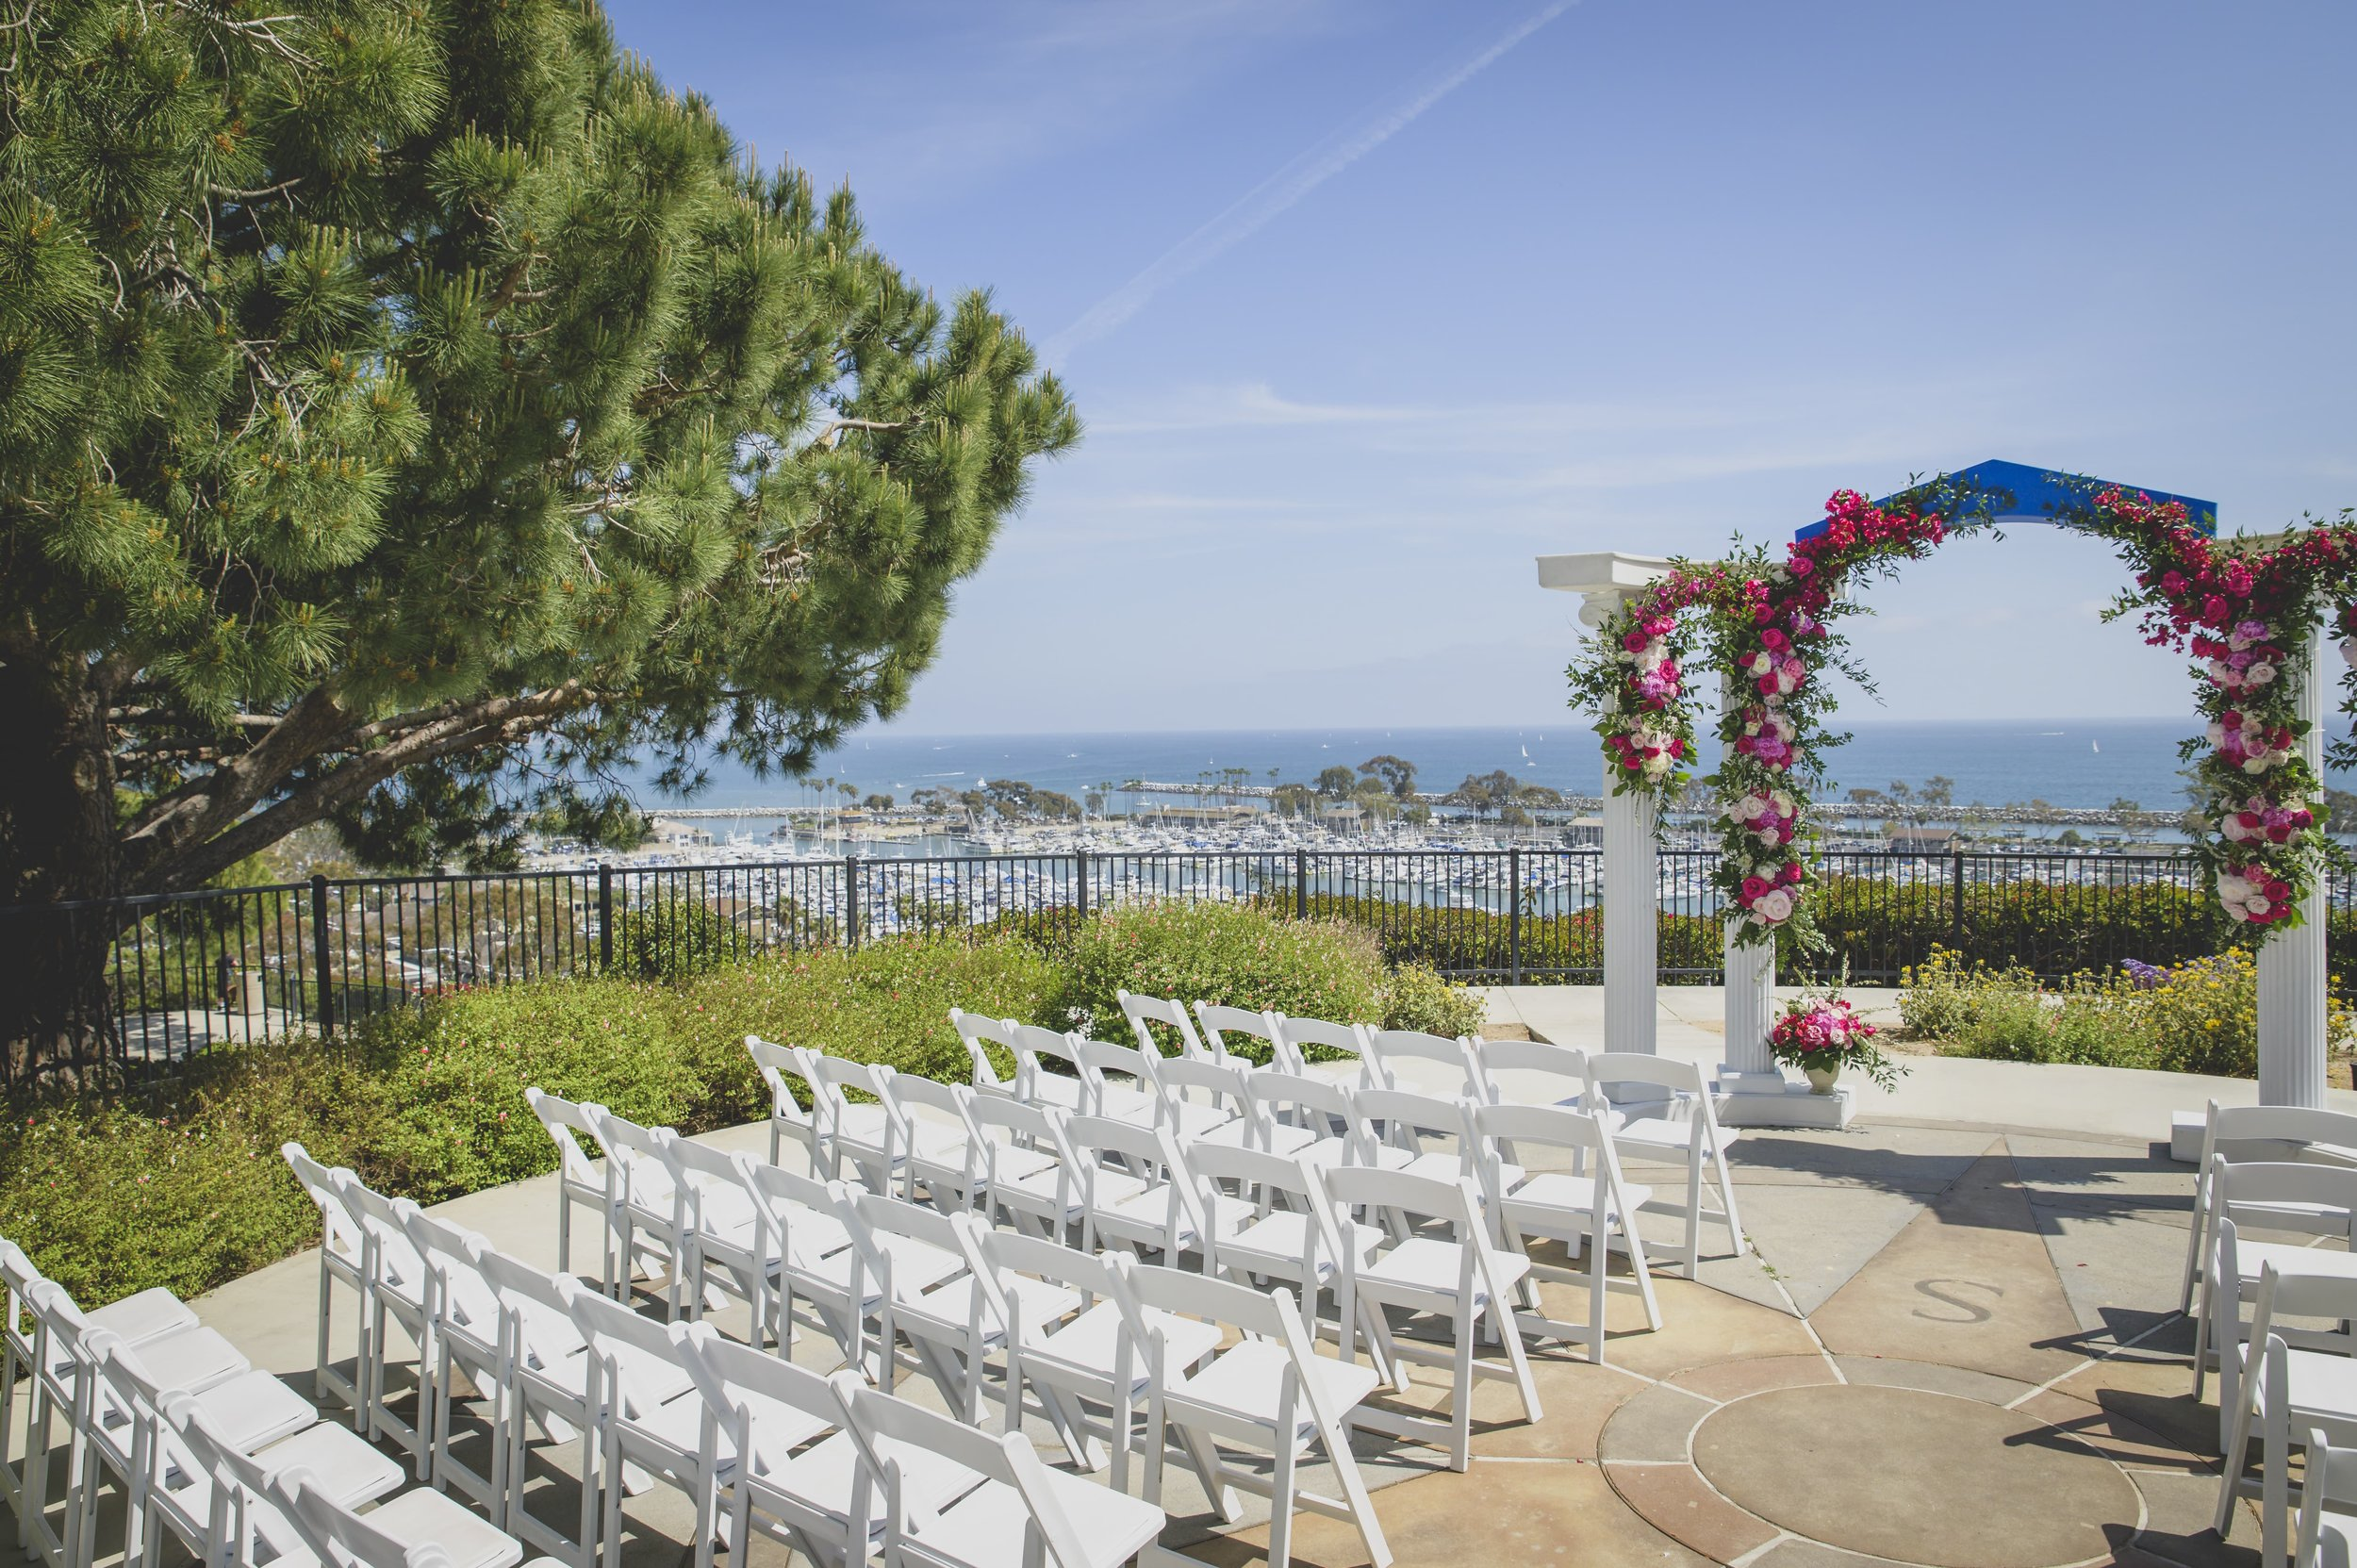 Wedding Photography Packages - Heritage Park, Dana Point, CA - Ceremony location with white flowered arches and the ocean in the background